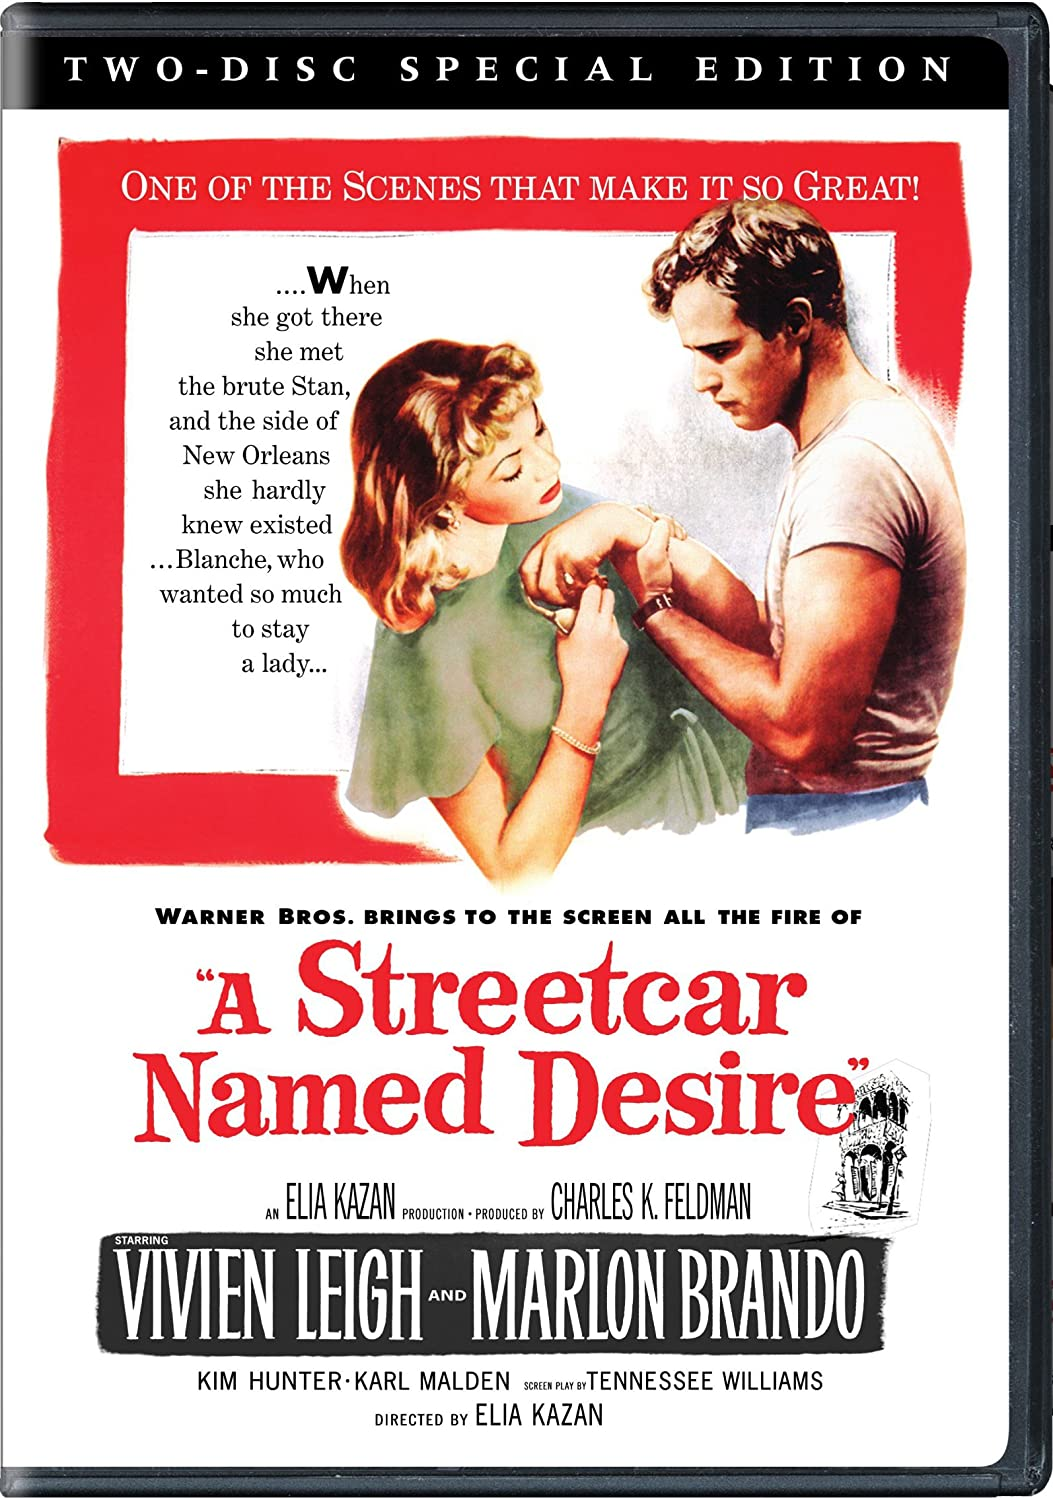 com a streetcar d desire two disc special edition  com a streetcar d desire two disc special edition marlon brando vivien leigh kim hunter elia kazan movies tv